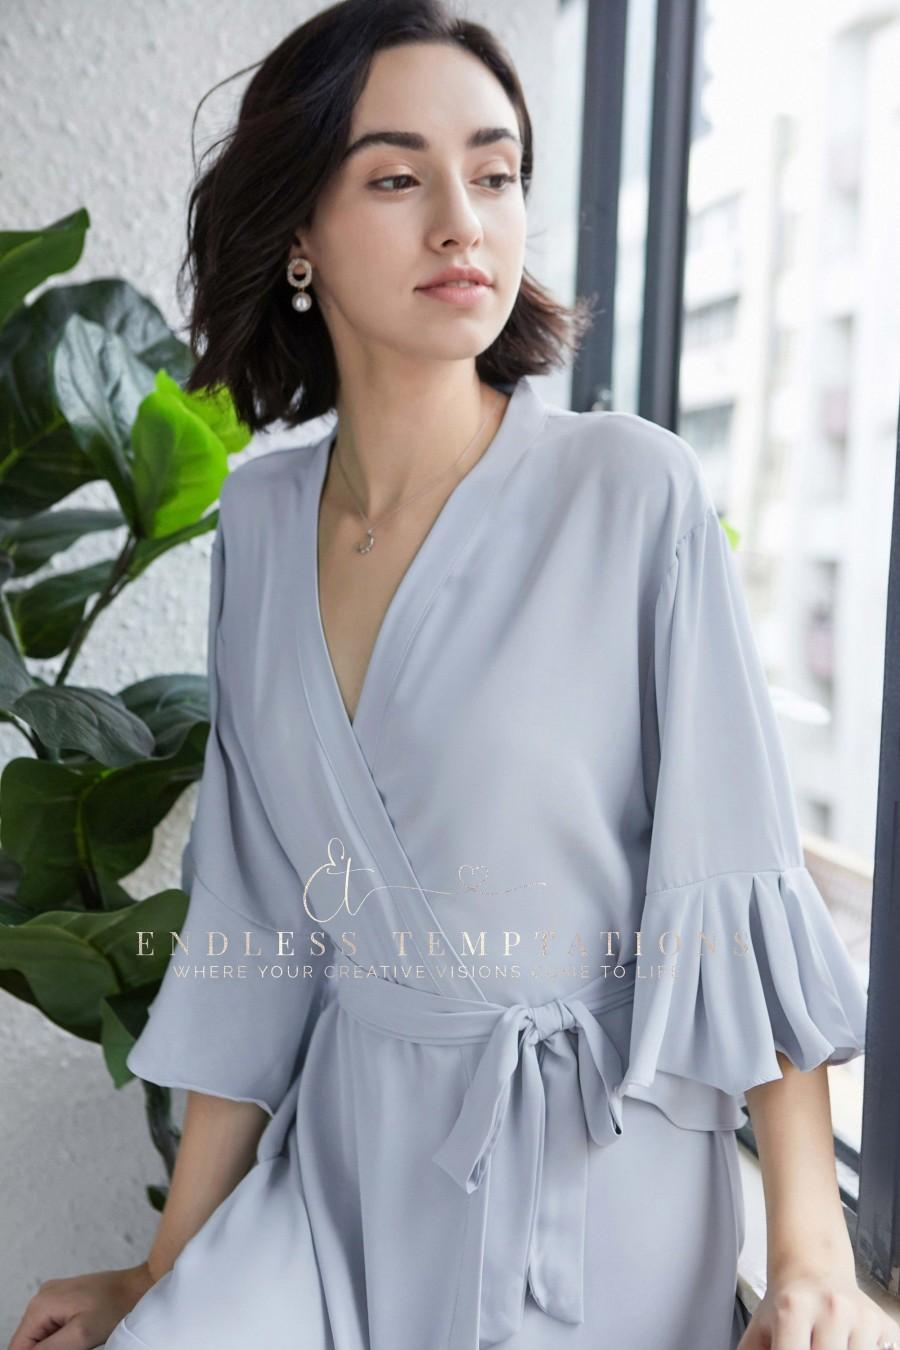 Wedding - PLAIN DUSTY BLUE Ruffle Lace Robe, Bridesmaid Gifts, Chiffon, Robes, Lace Robes, Bridal Robe, Satin Robes, Flower Girl Robes, Bride, Gifts